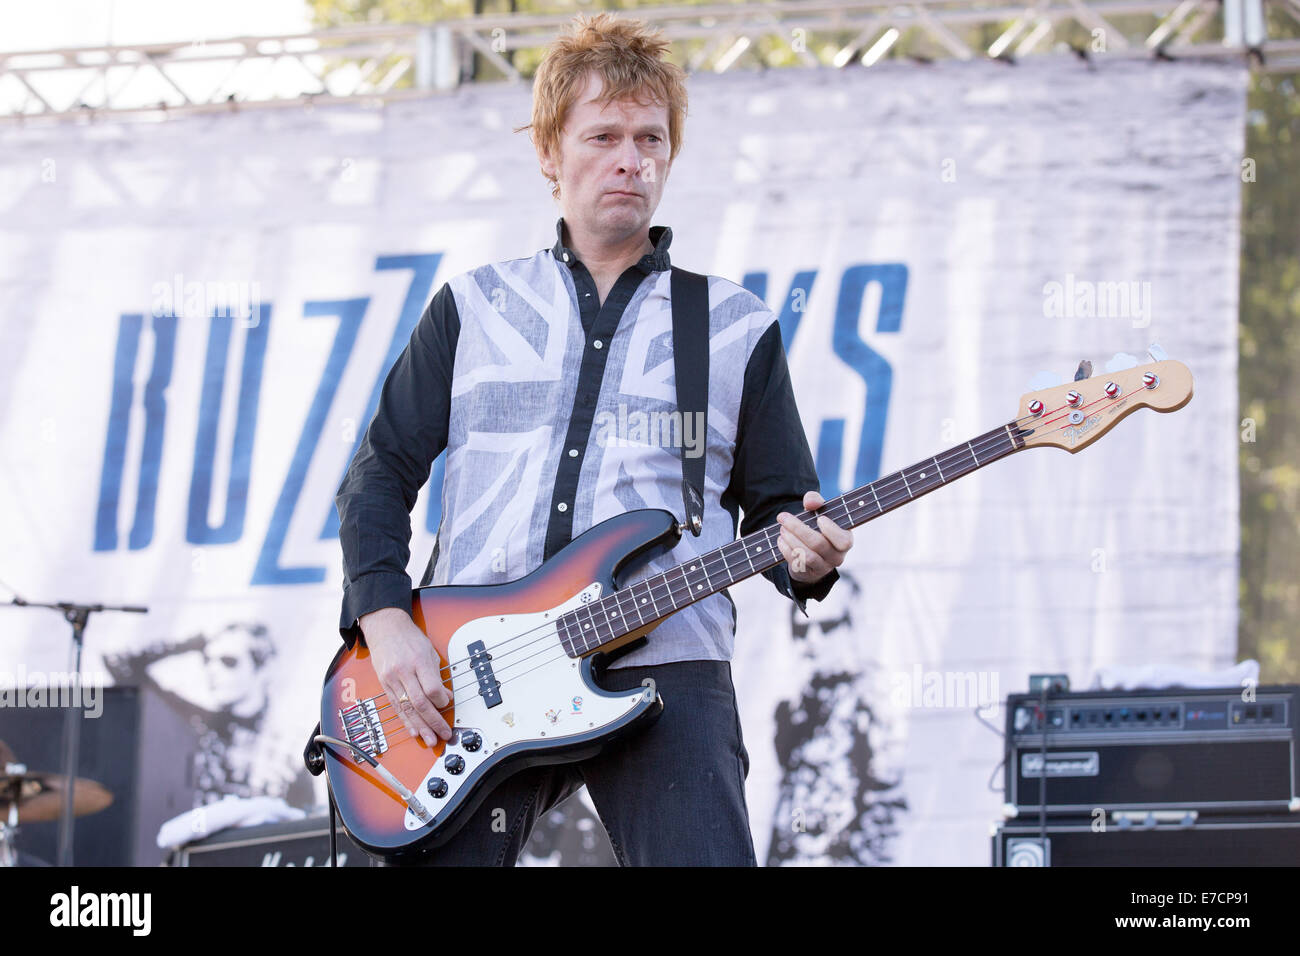 Chicago, Illinois, USA. 13th Sep, 2014. Bassist CHRIS REMMINGTON of the band The Buzzcocks performs live at 2014 - Stock Image